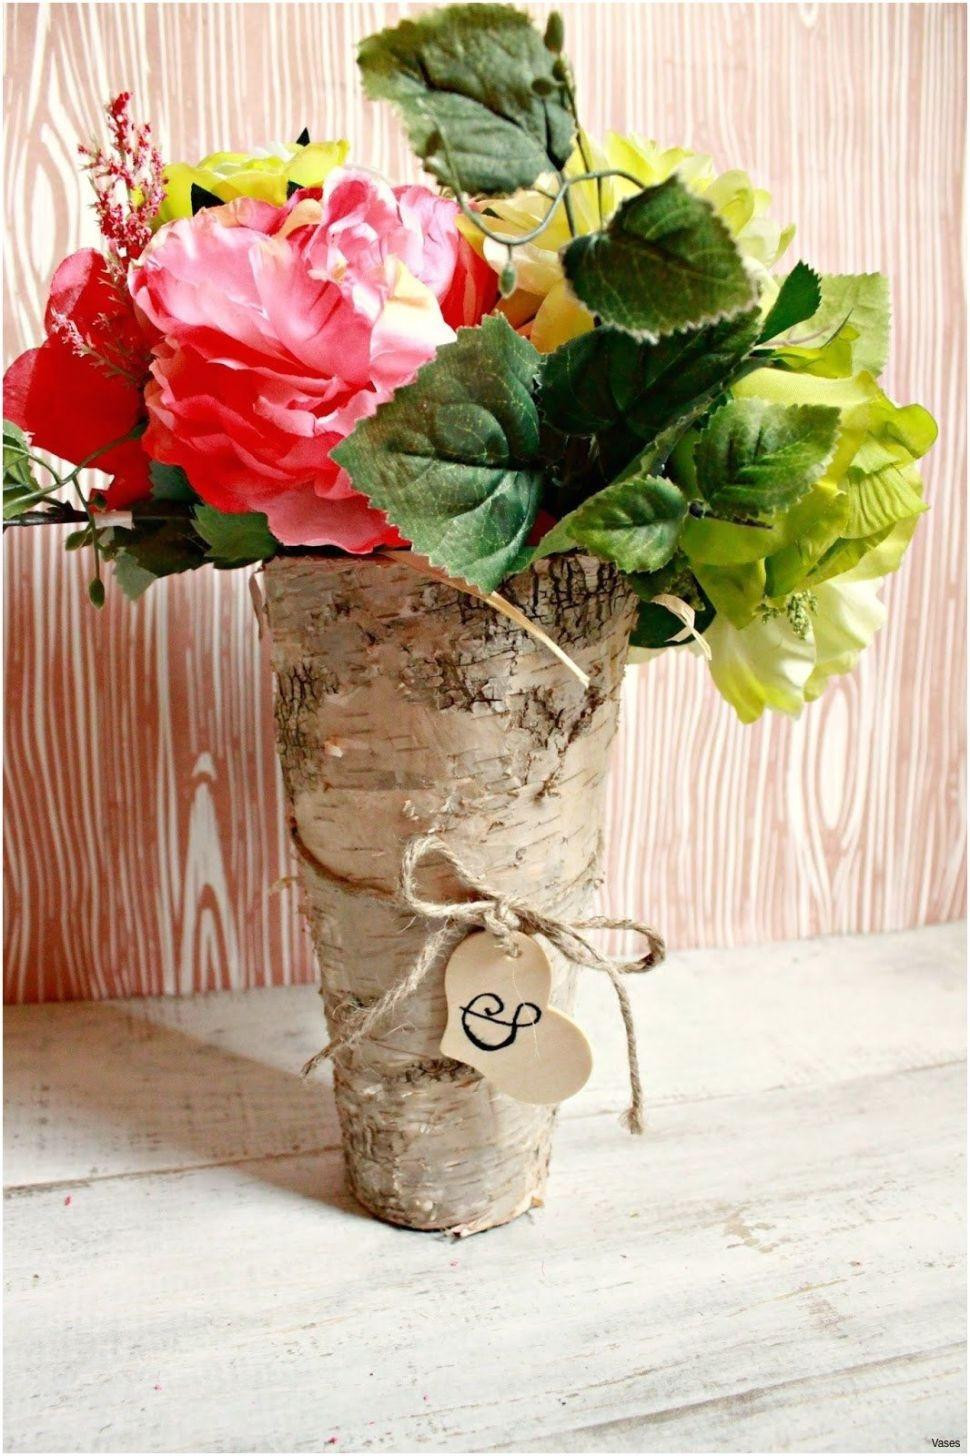 Floor Vase Floral Arrangements Of More Diy Centerpiece Ideas Tips Economyinnbeebe Com with Regard to Wedding Floral Decorations Silk Bouquets H Vases Diy Wood Vase I 0d Design Diy Wedding